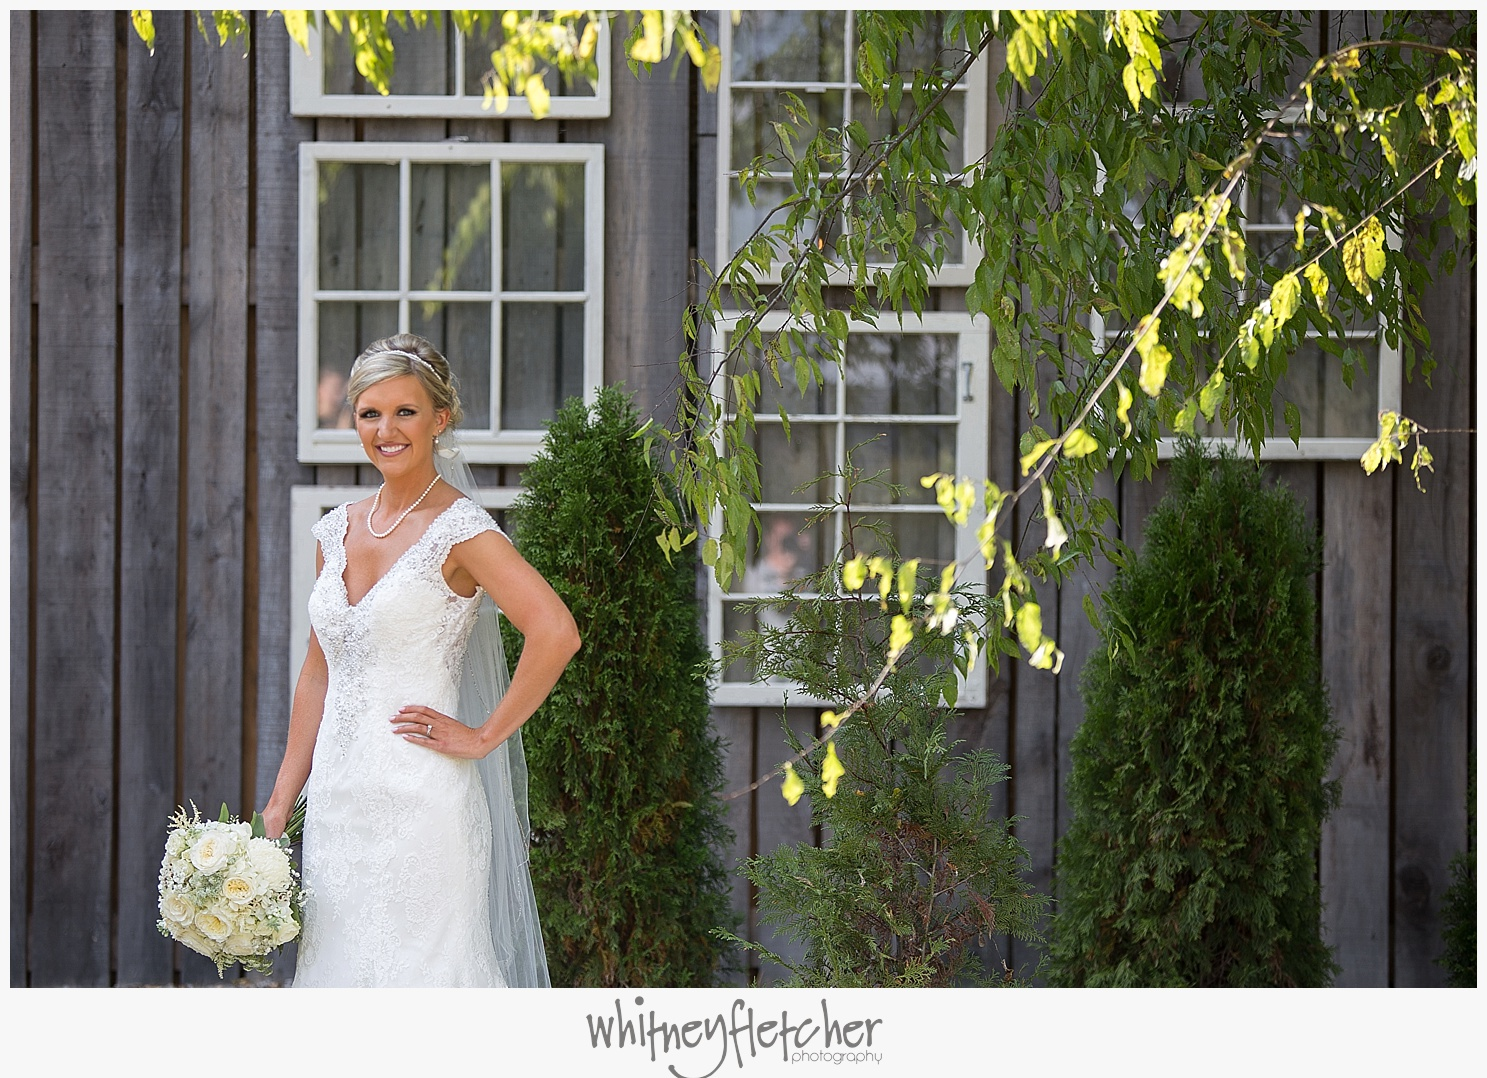 weddings-at-meadow-hill-farm17